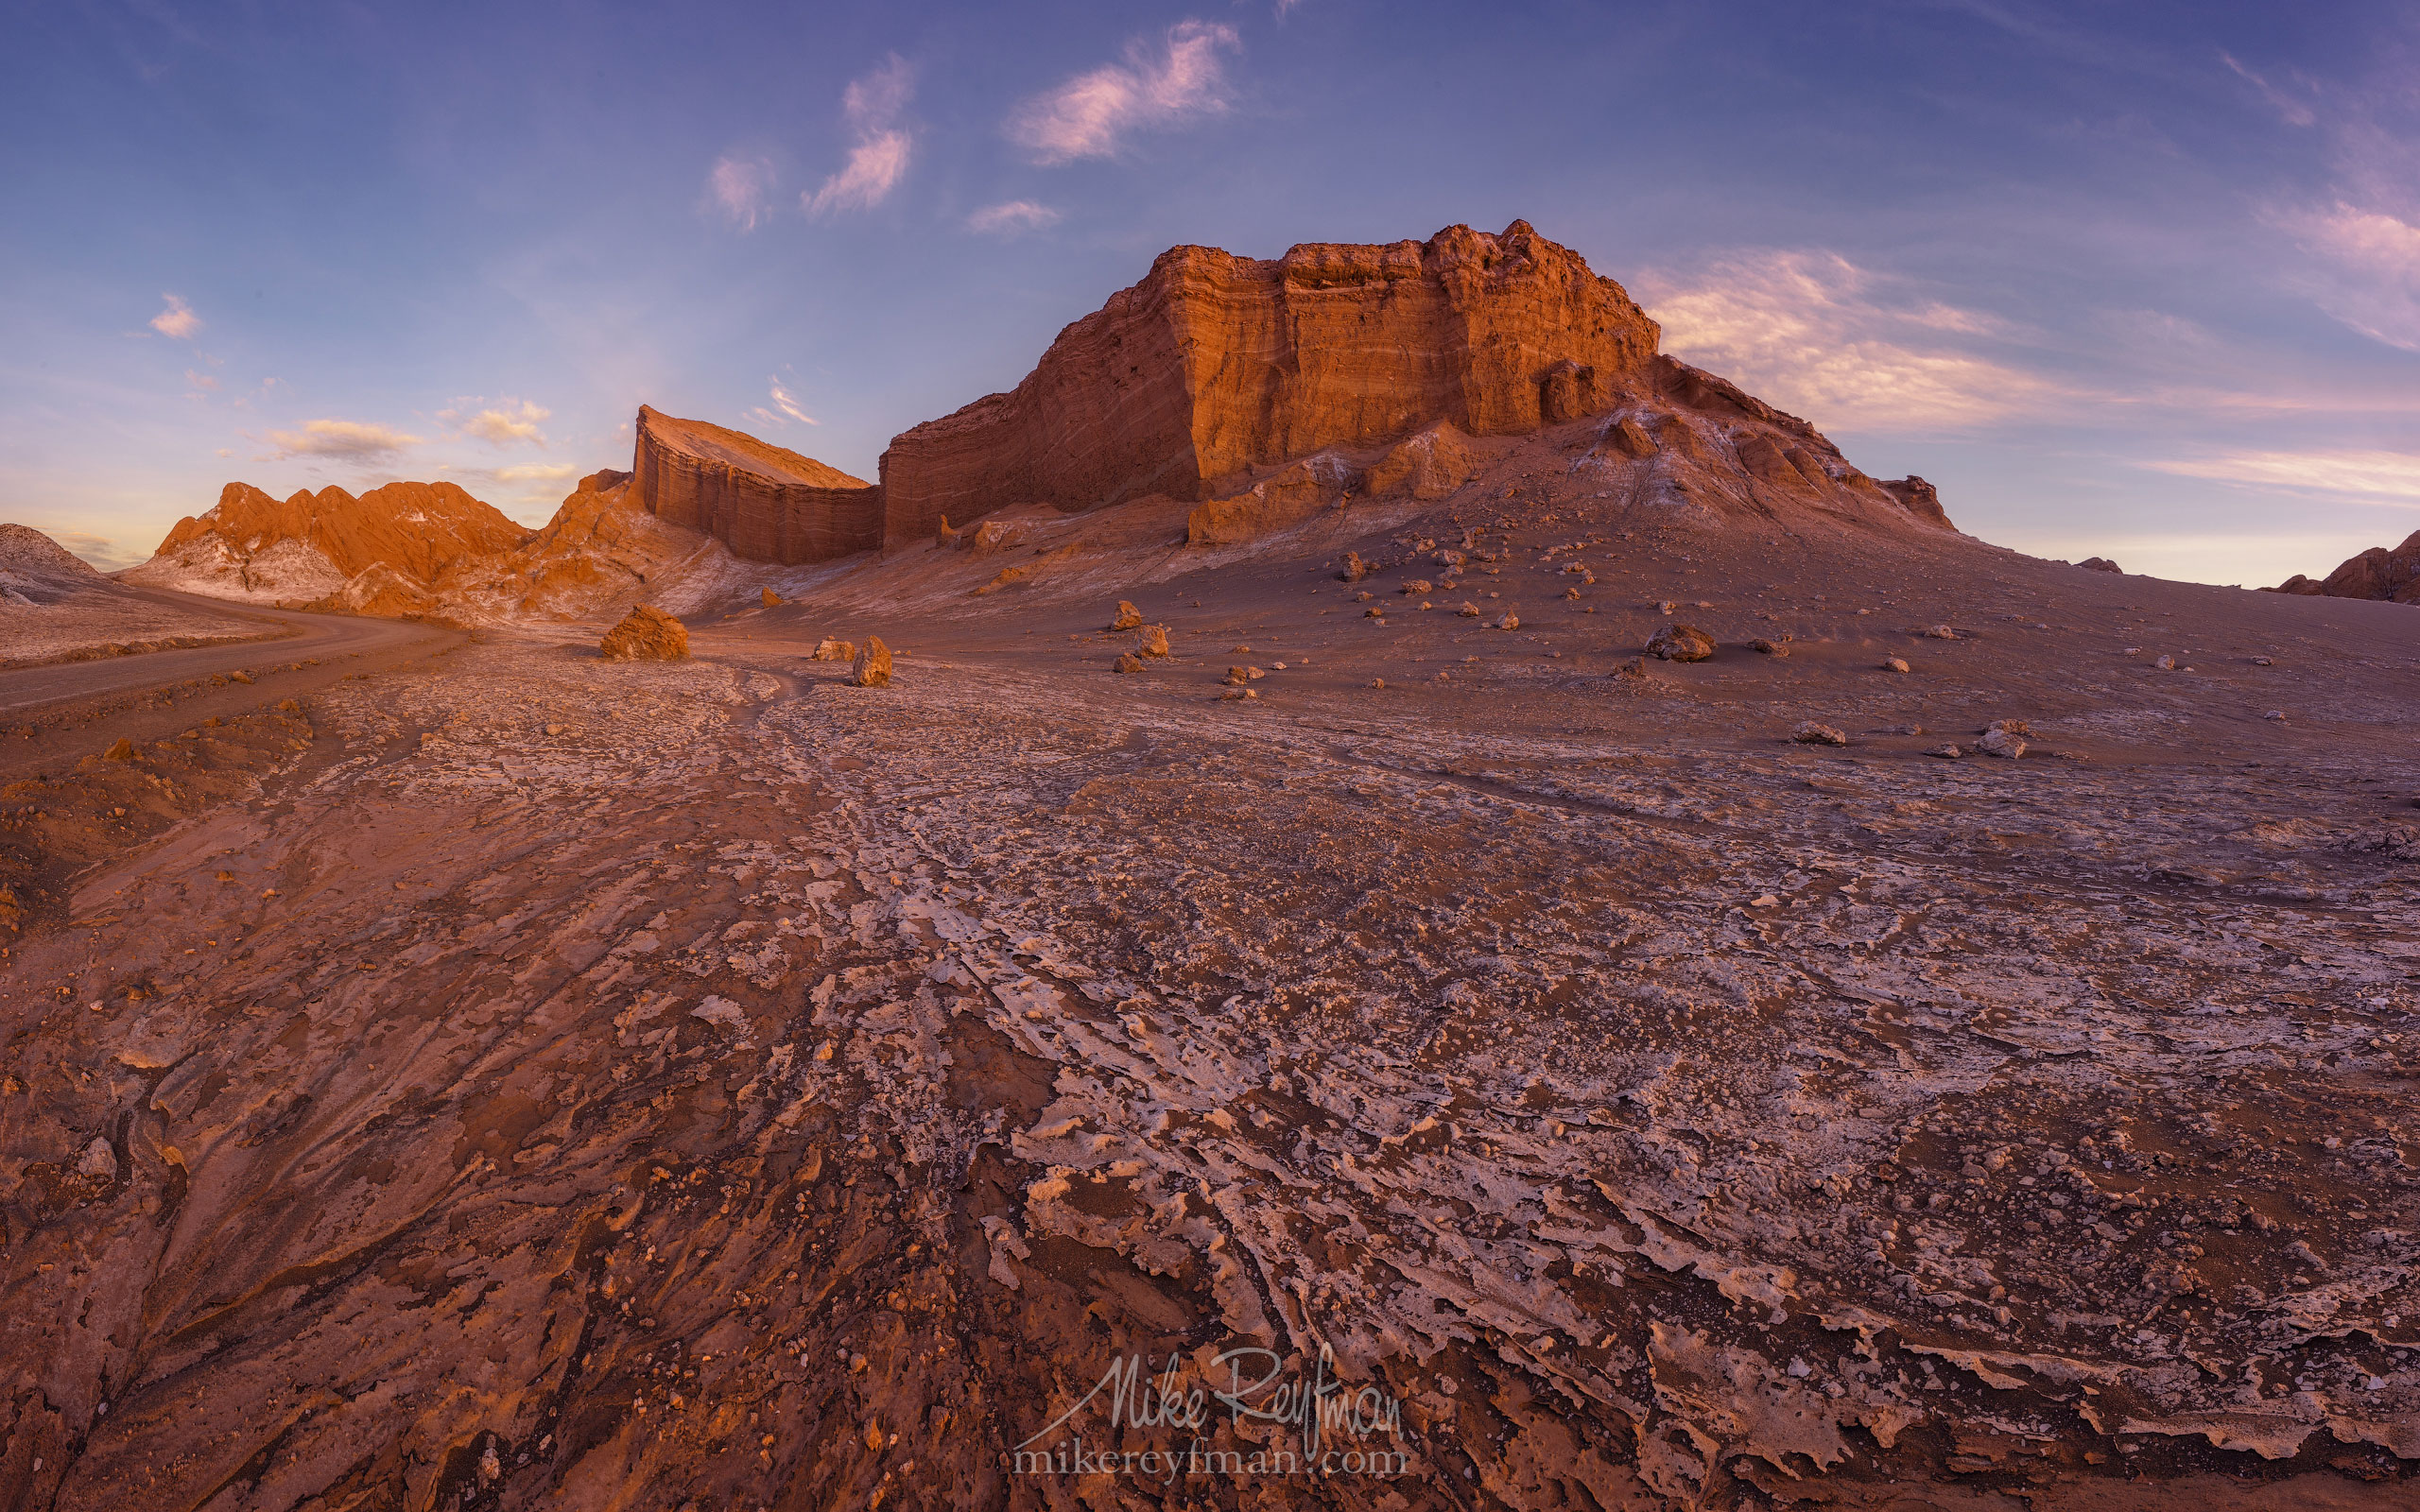 AA1-D1D8379 - Atacama and Altiplano. The Driest Desert and The High Plain - Mike Reyfman Photography